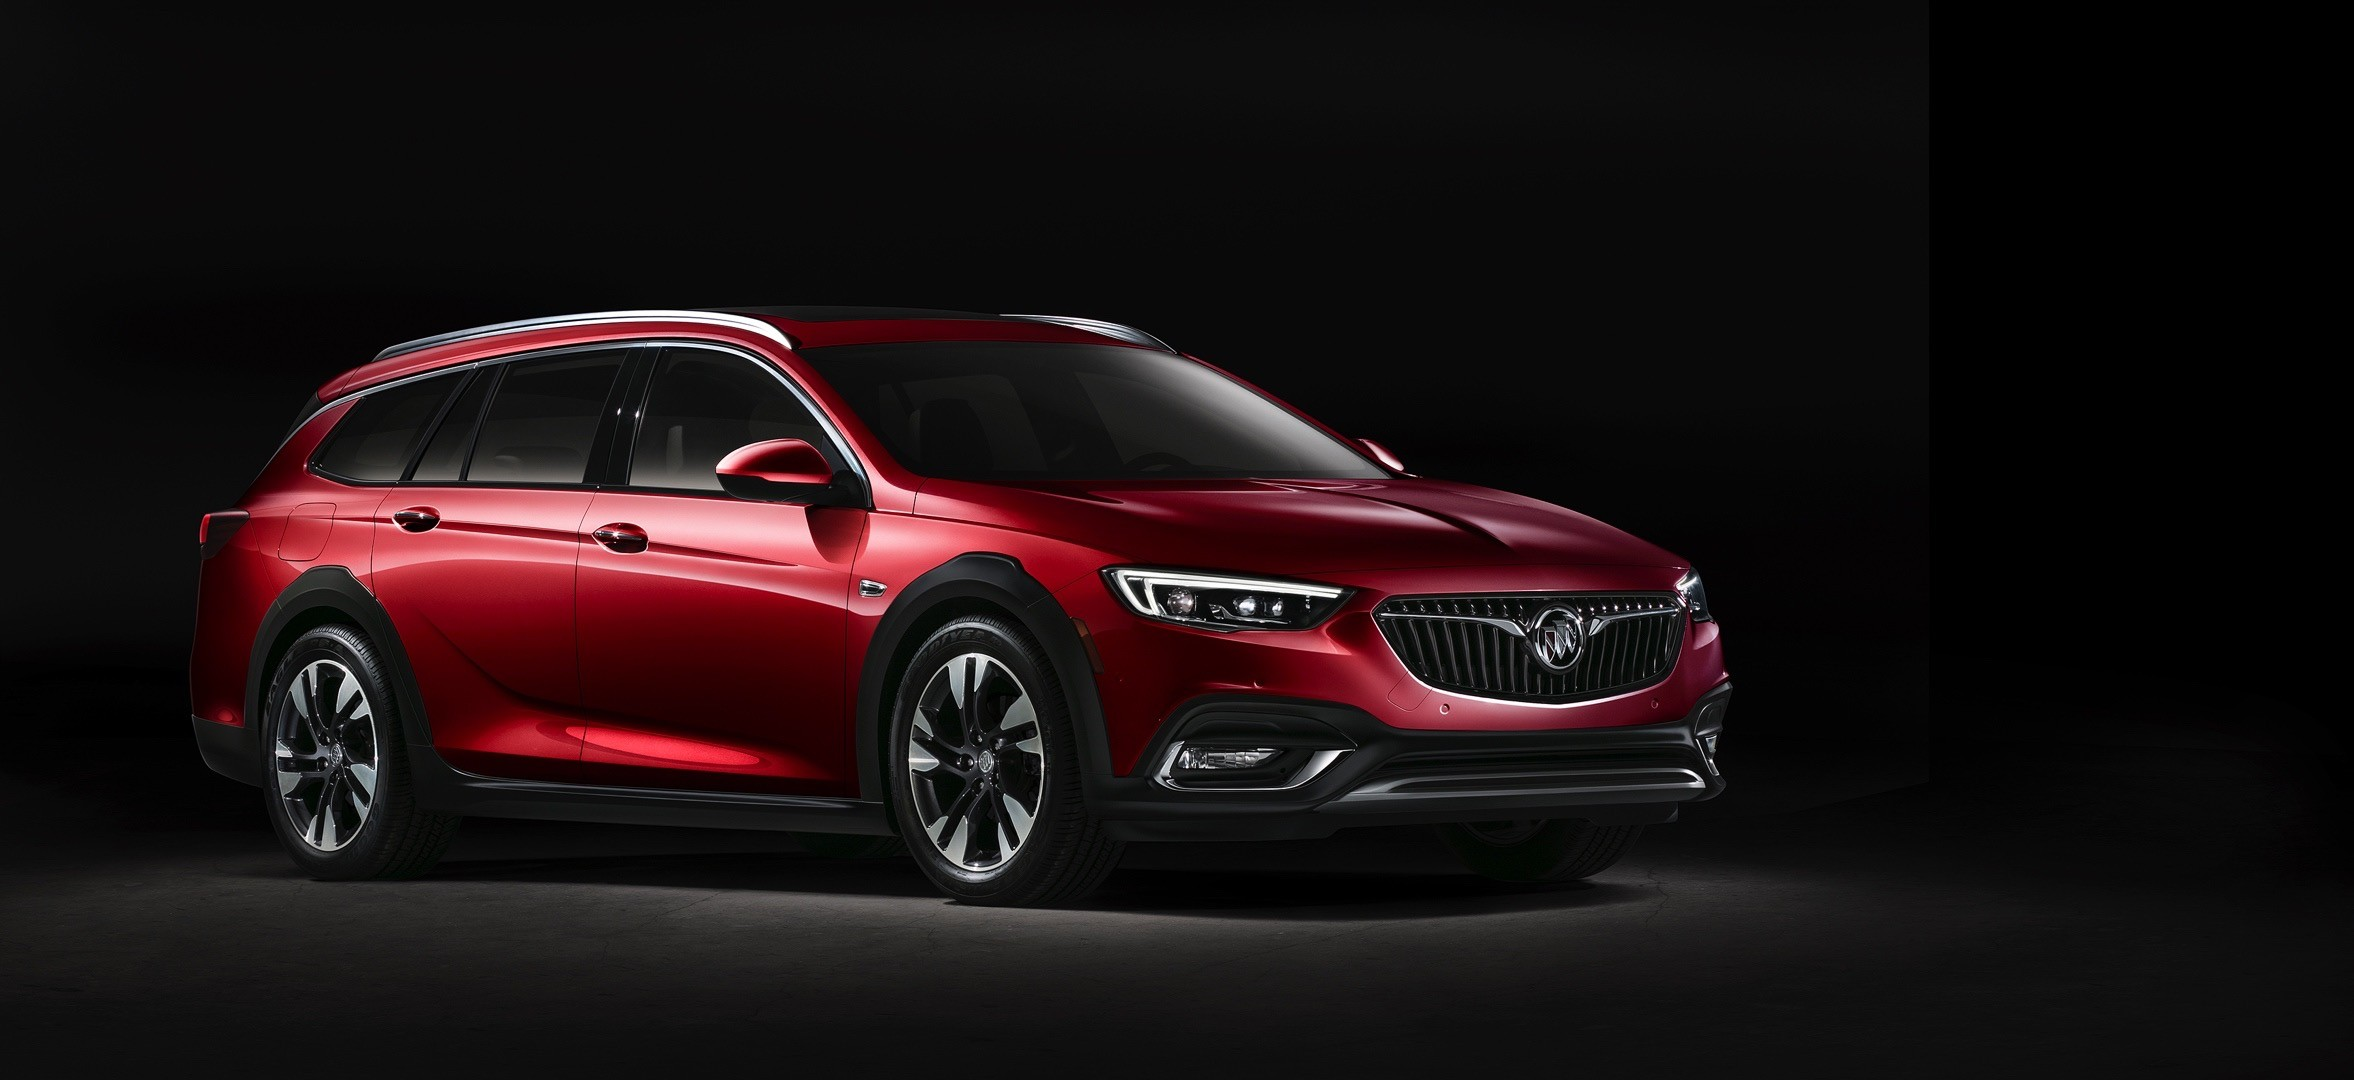 2018 Buick Regal Gs Leaks In China Has 2 0t Engine